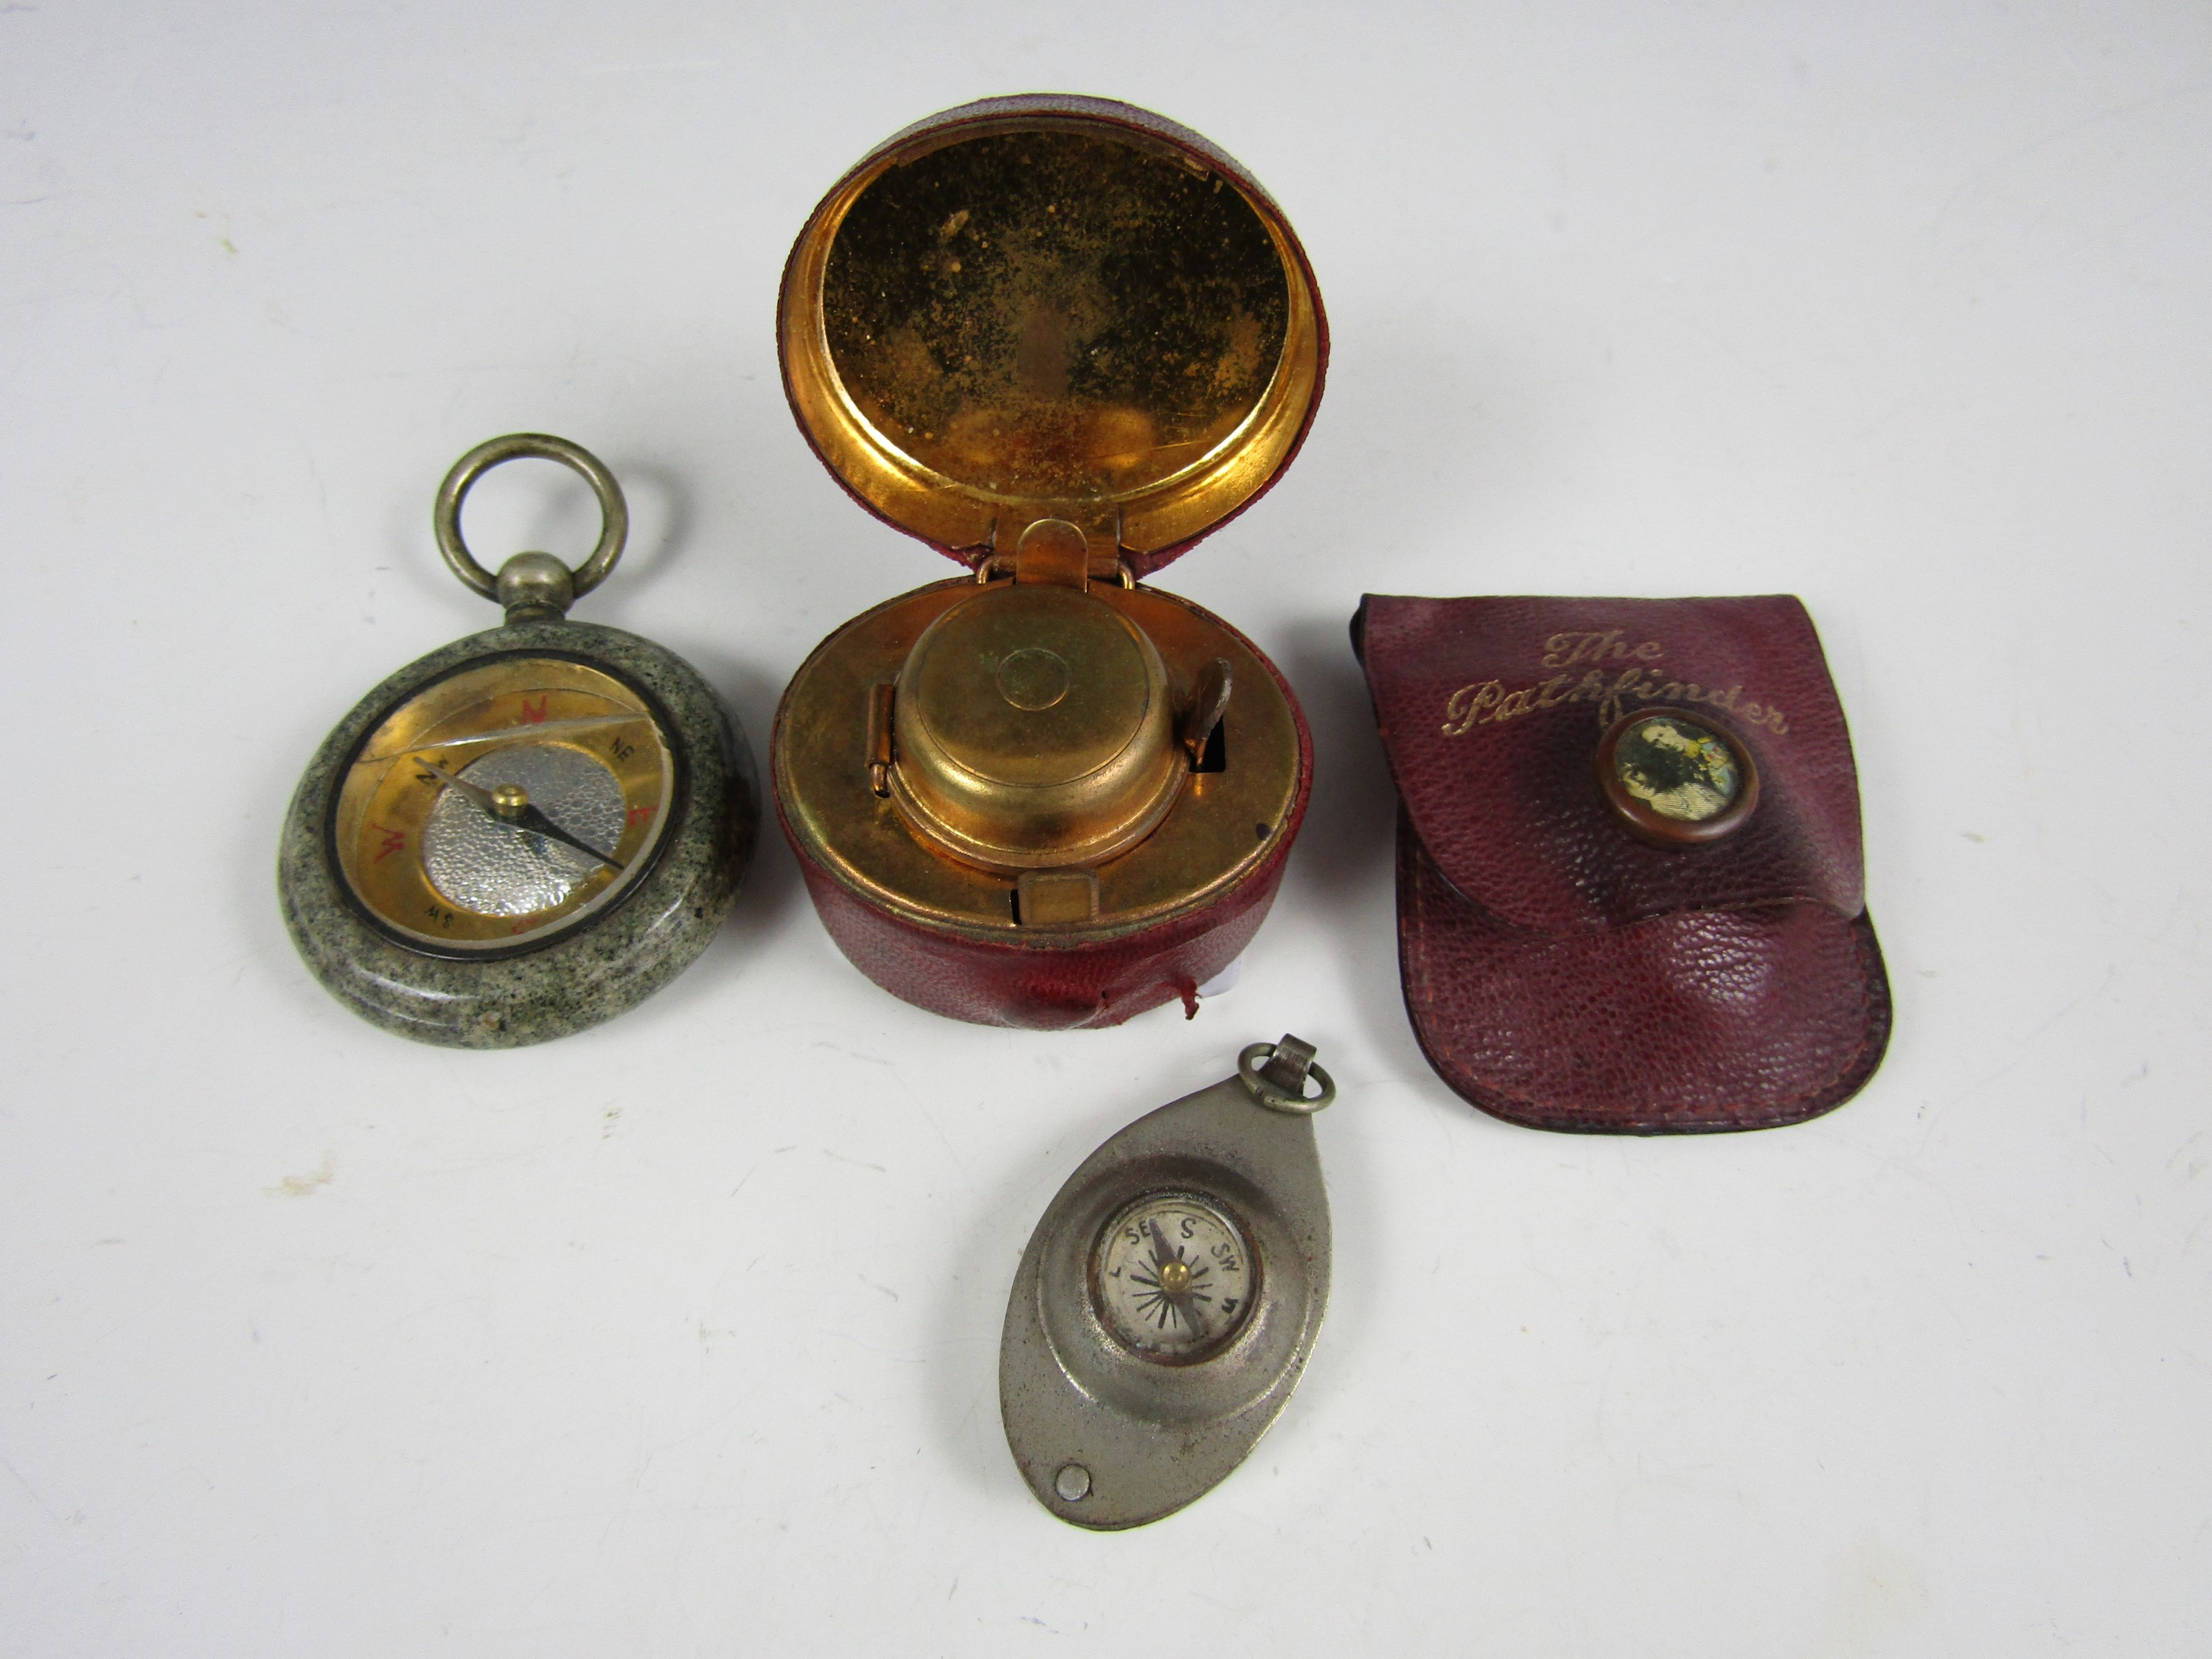 Lot 6 - A portable ink well, together with a pathfinder compass and one other similar